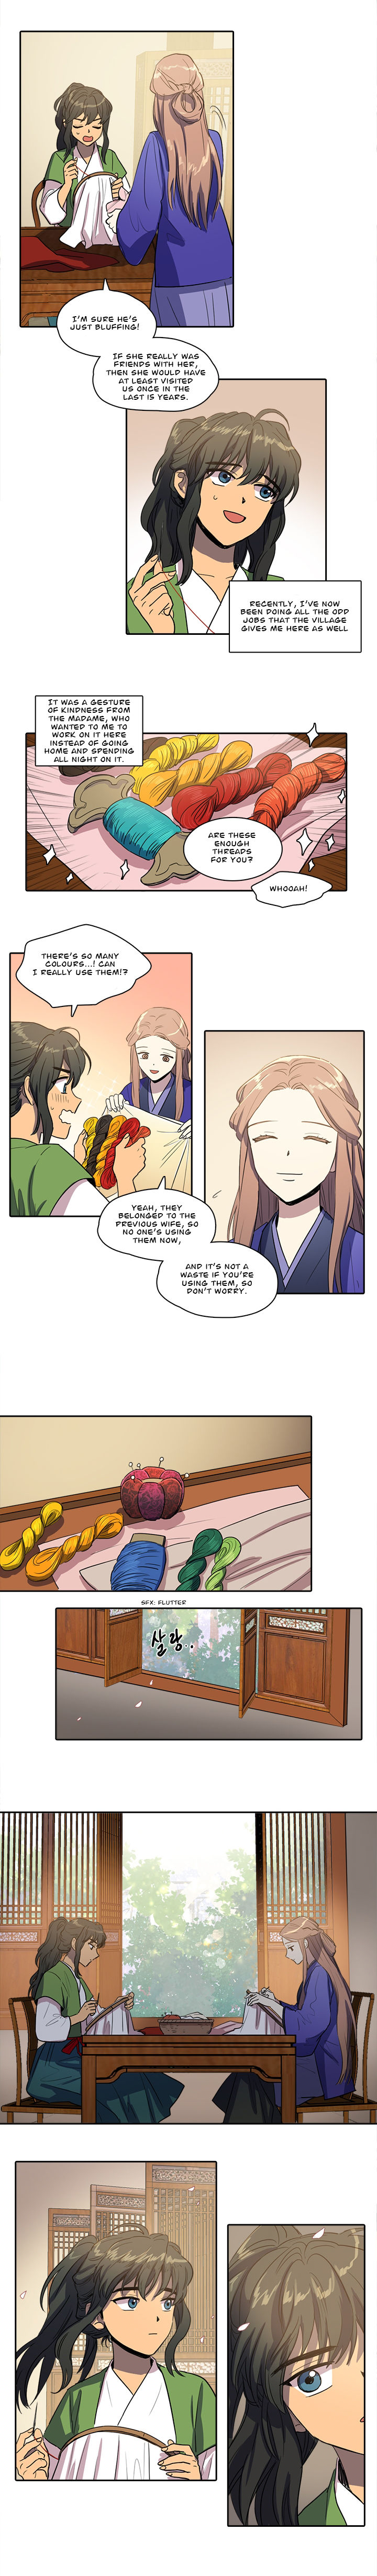 Her Shim Cheong 31 Page 2